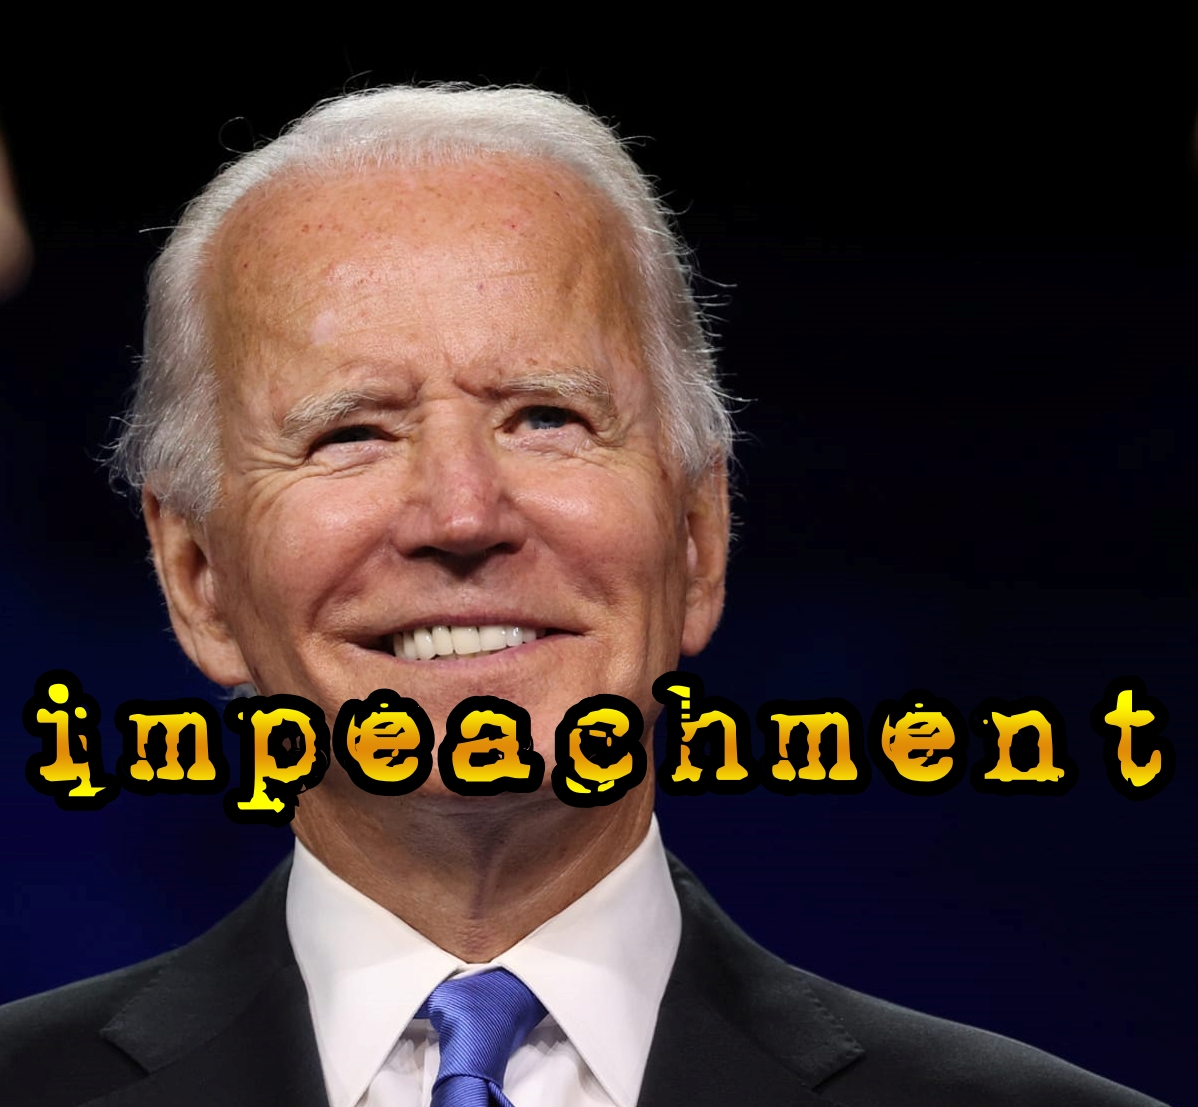 Impeachment per Joe Biden